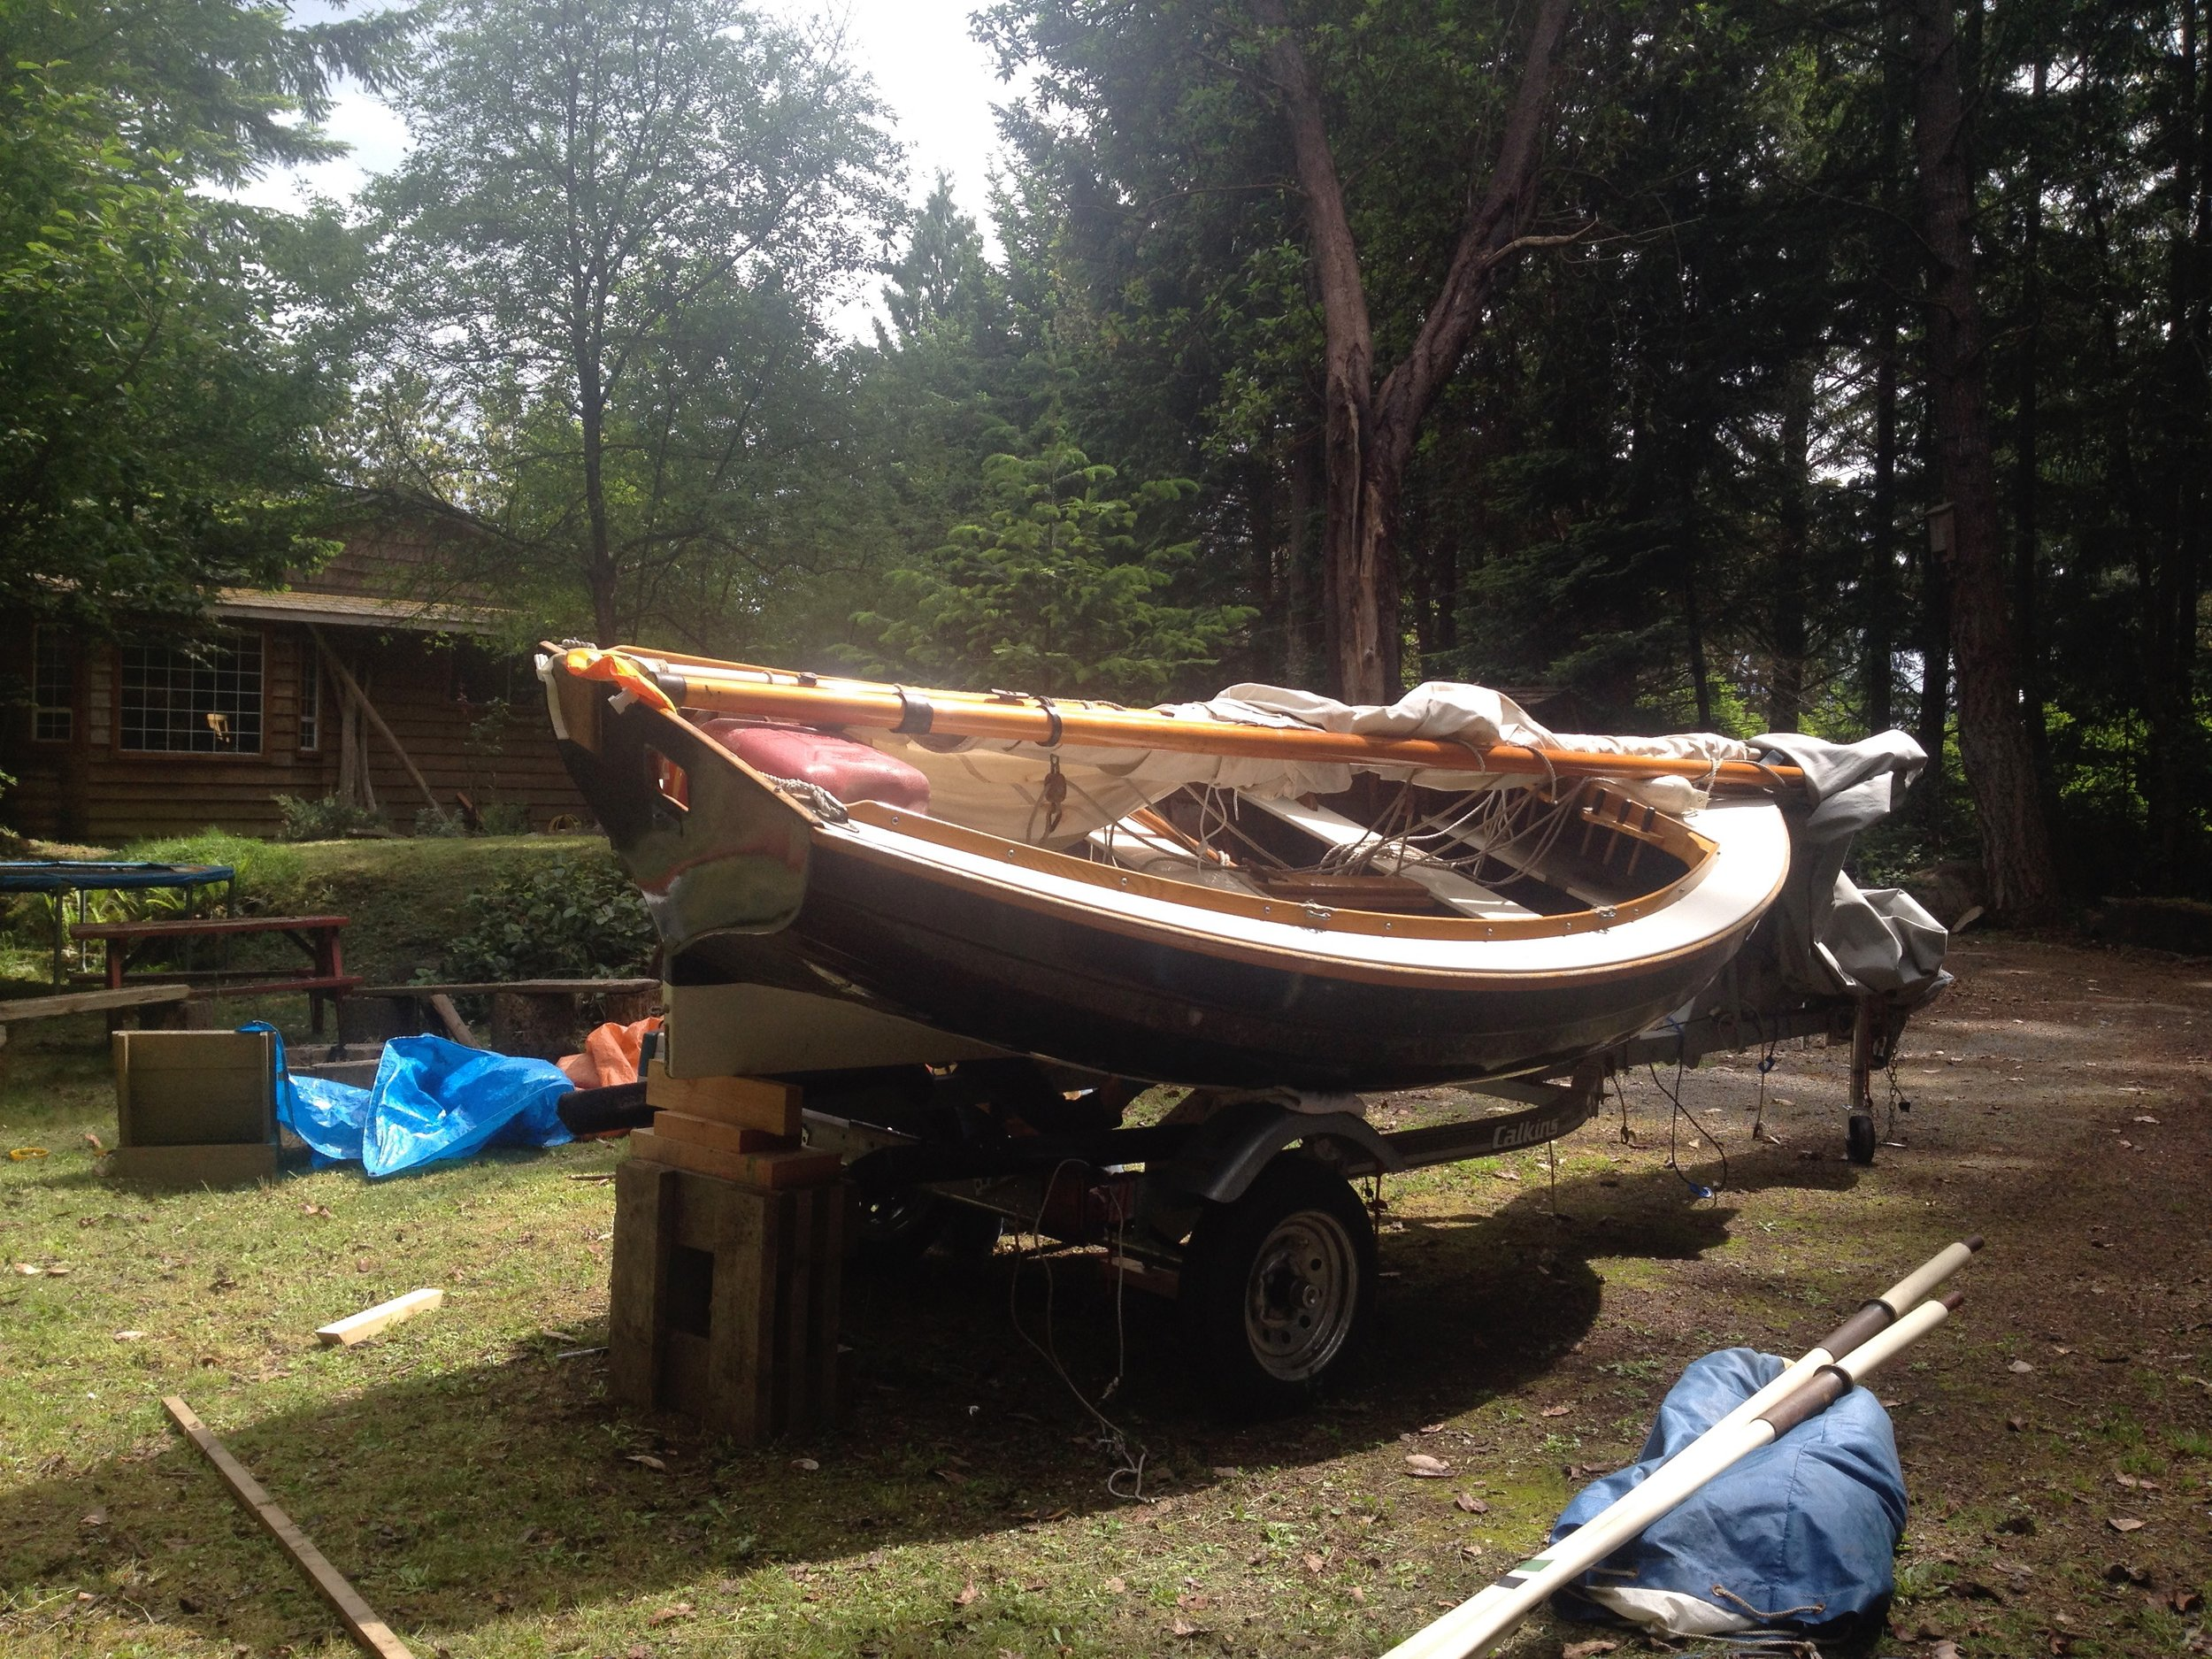 My boat, Golden Eye, in preparation for getting to the water (2014)